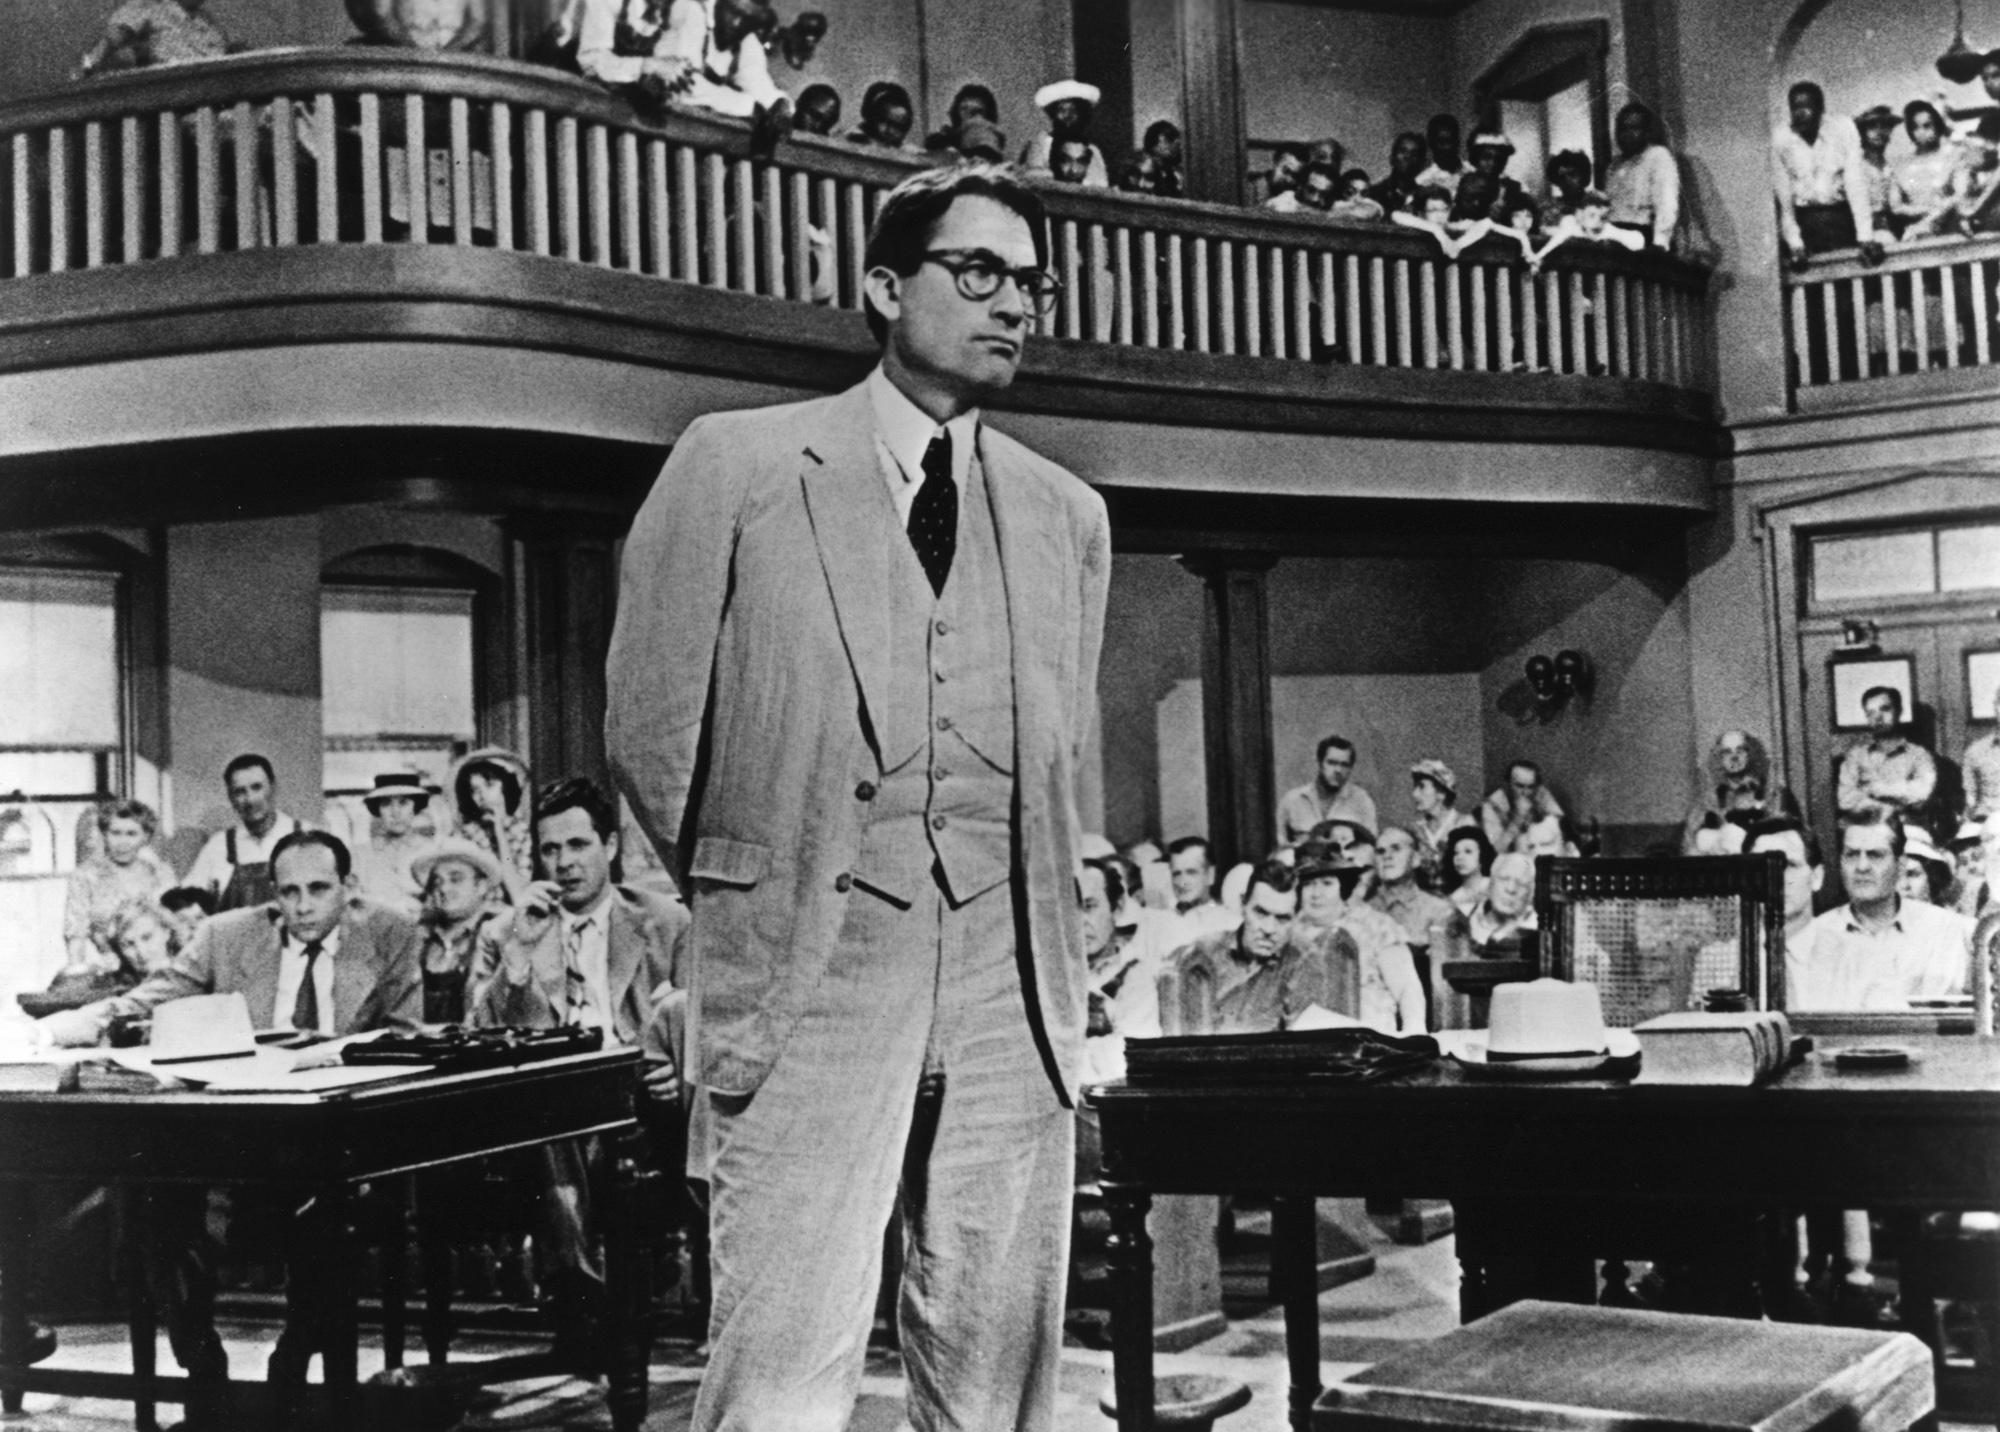 wondrus-gregory-peck-portrays-attorney-atticus-finch-in-the-1962-film-to-kill-a-mockingbird-b90b03b6d581ac59